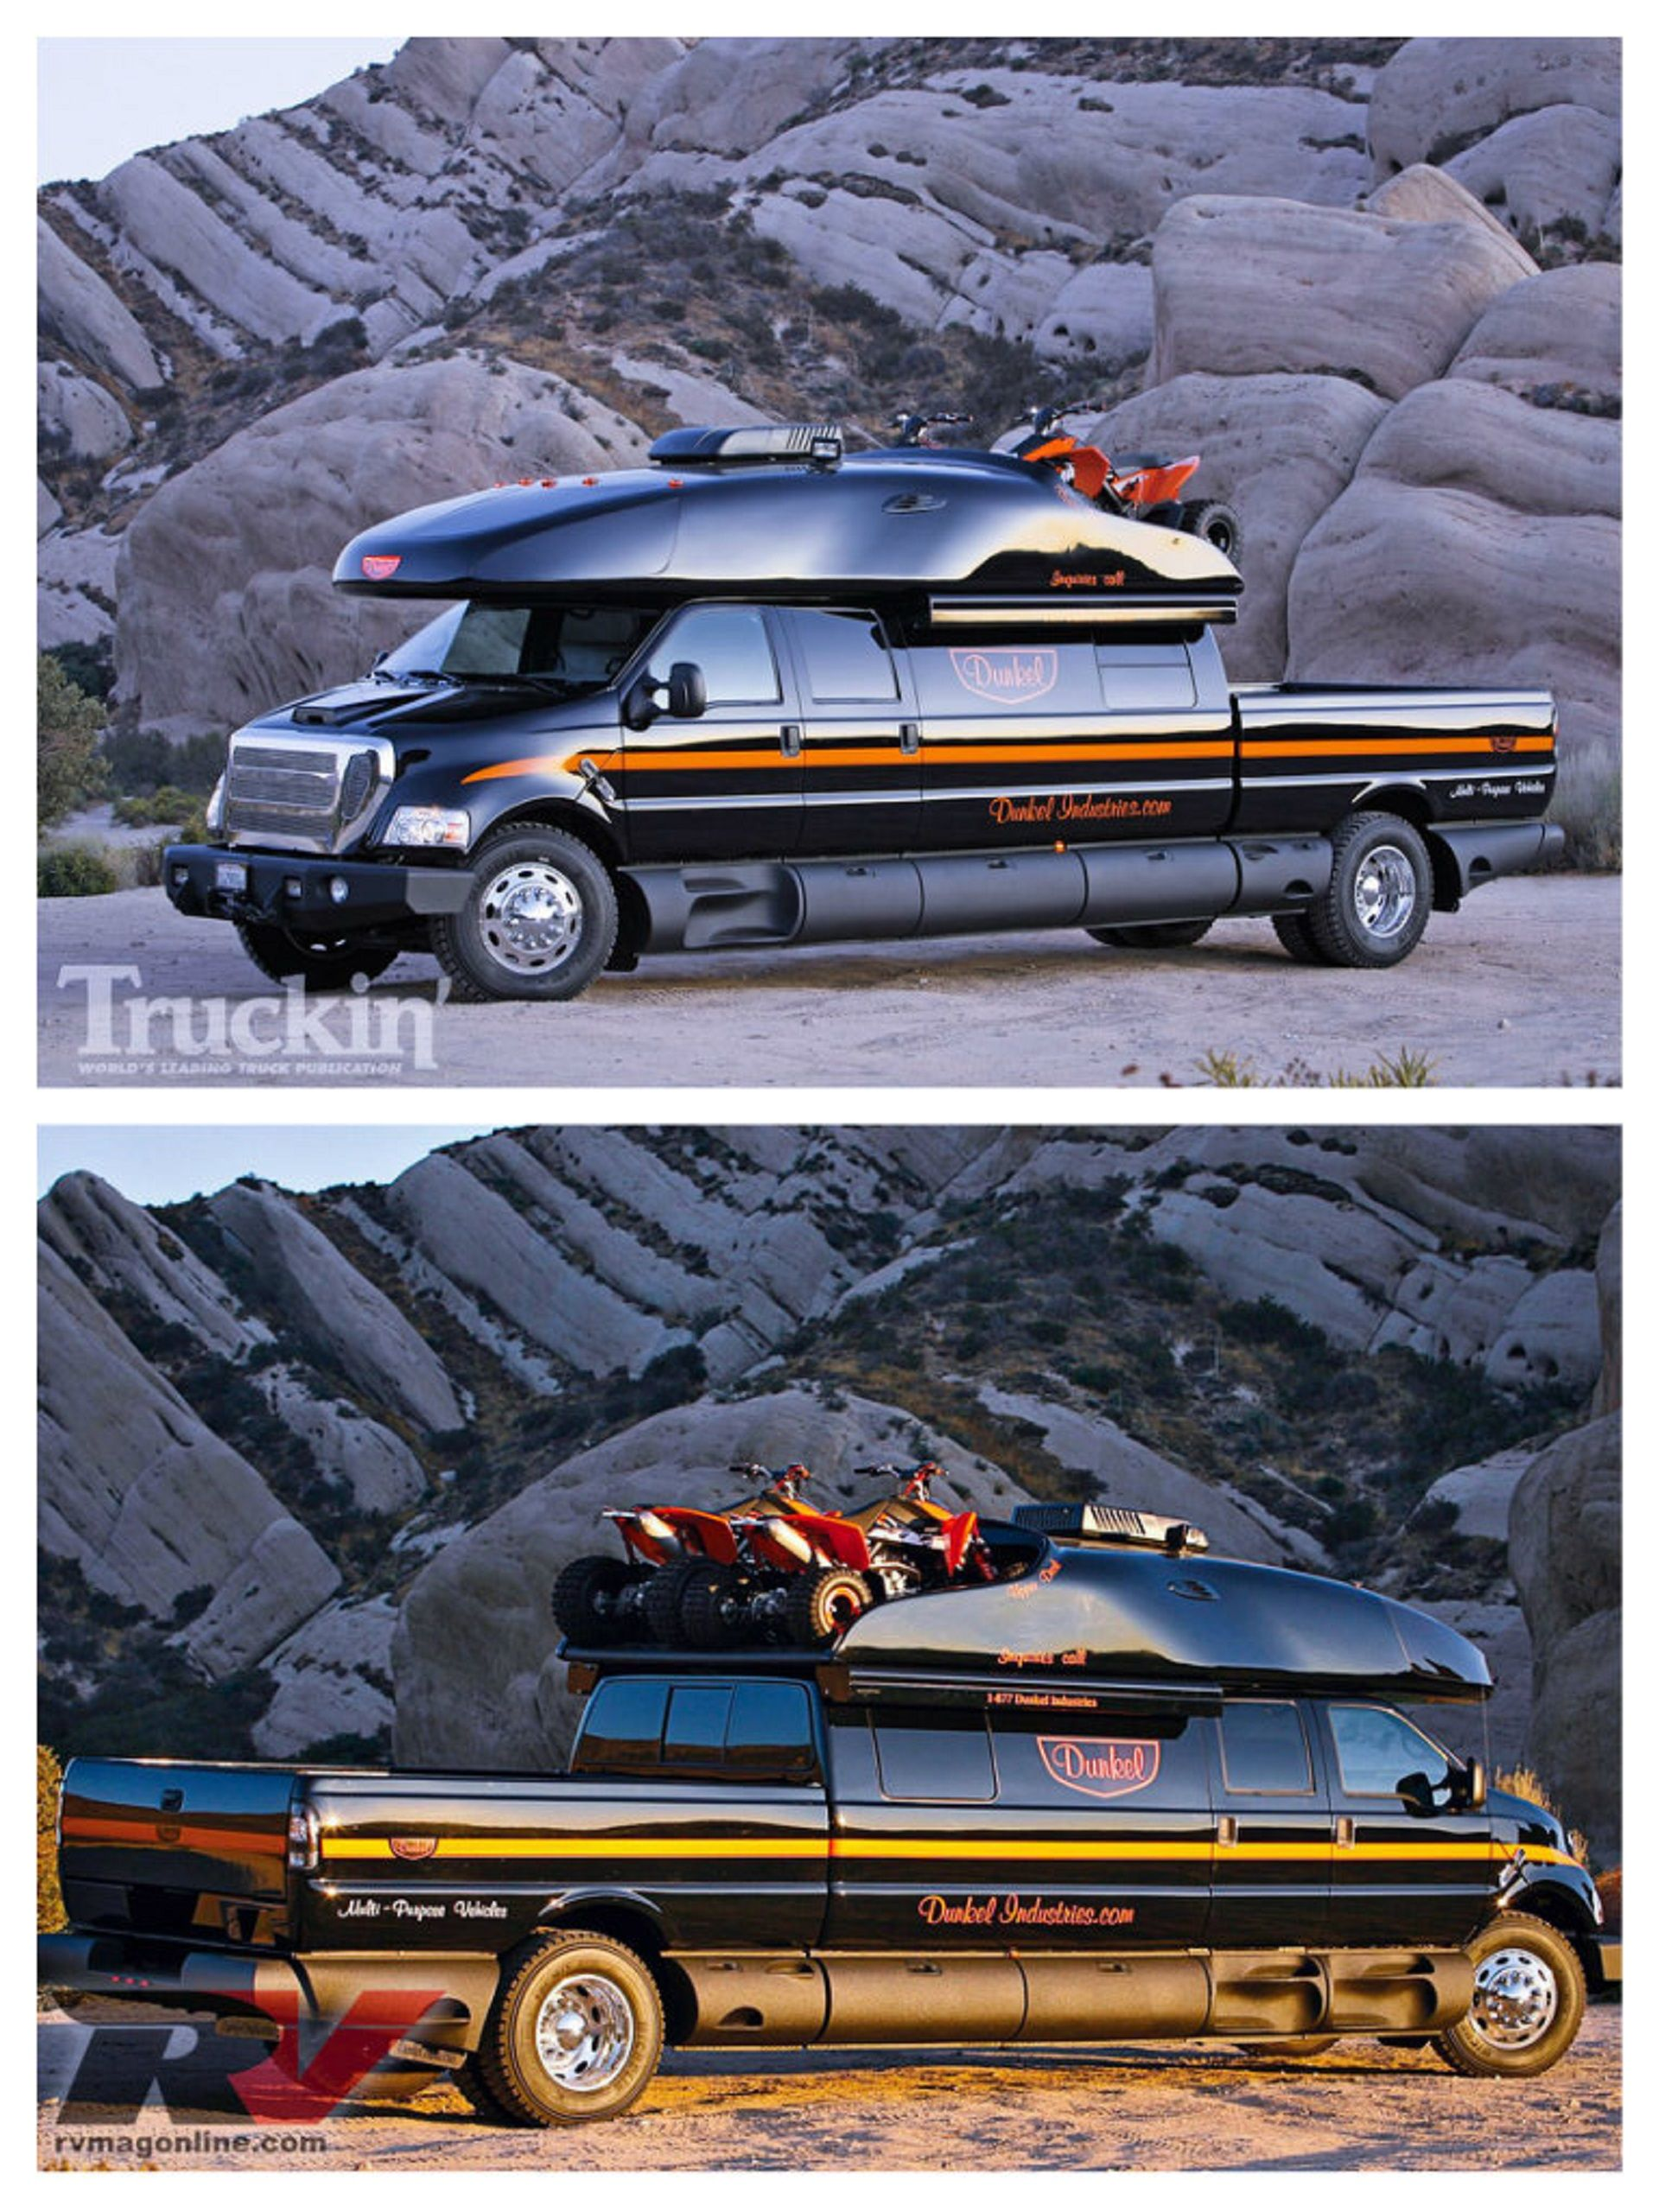 Dunkel industries luxury ford f 650 4x4 expedition truck http rvmagonline